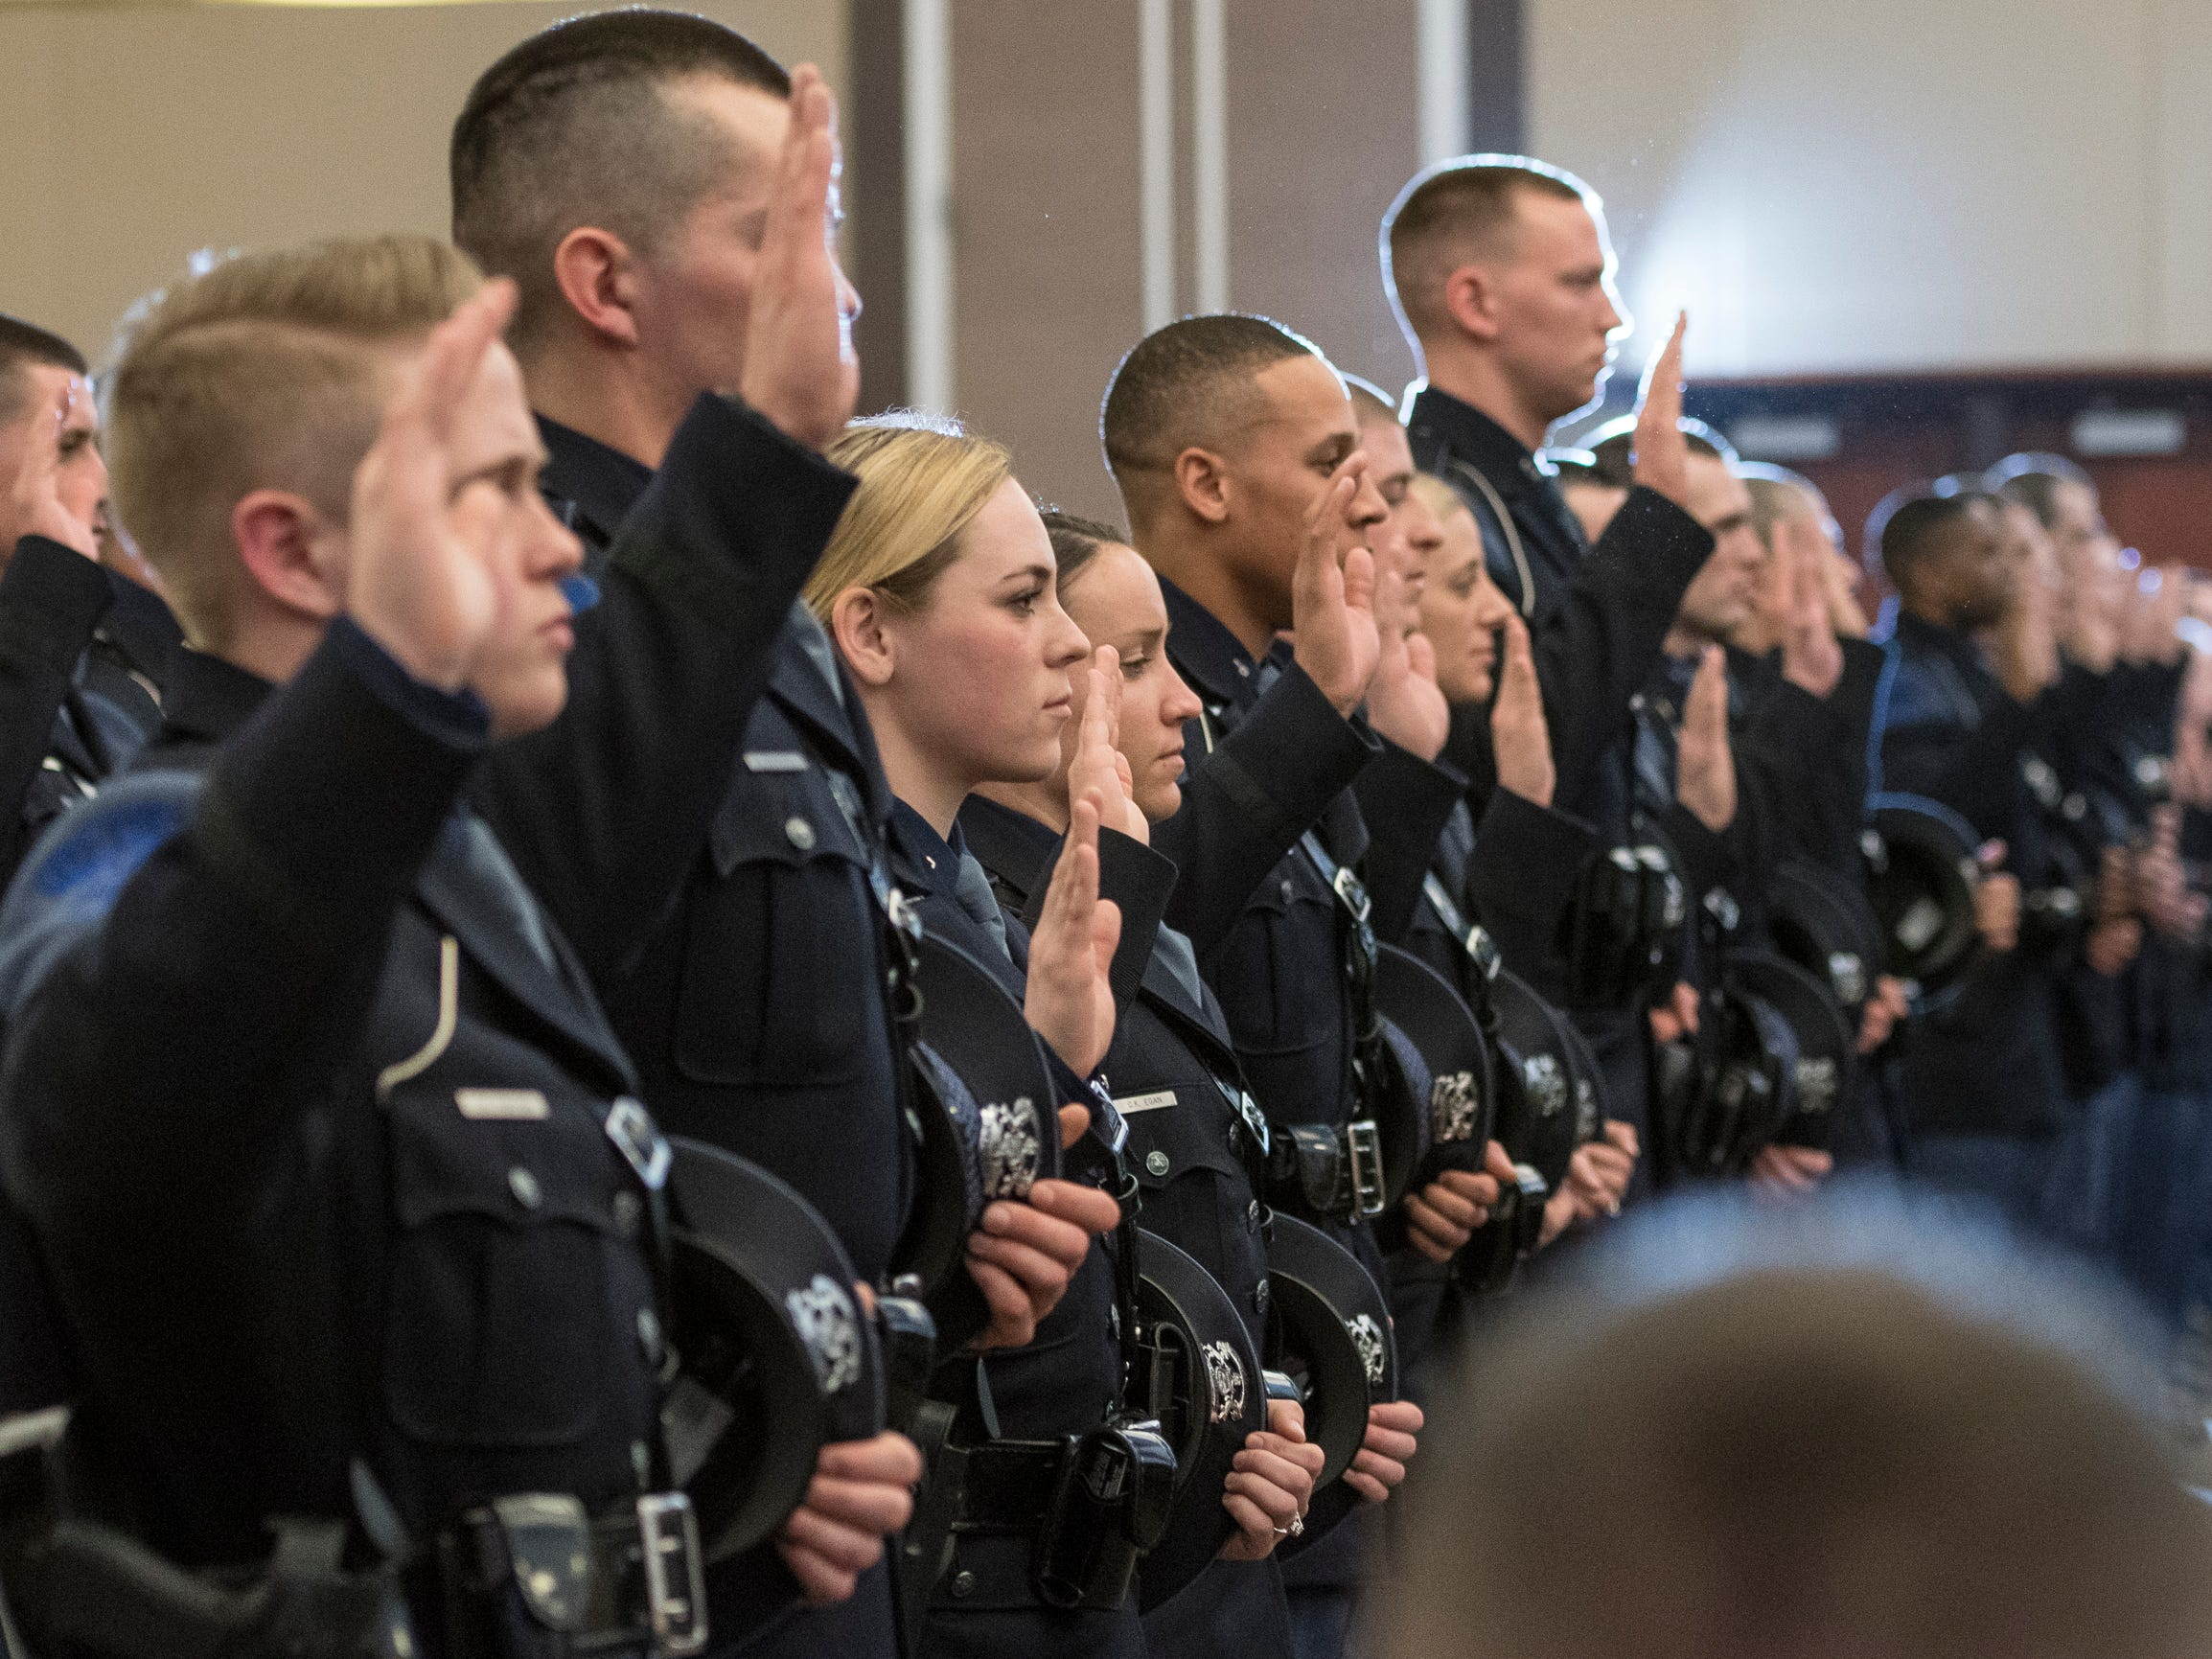 Members of the 135th Trooper Recruit School take the Oath of Office Wednesday, April 3, 2019, during the 135th Michigan State Police Trooper Recruit School graduation at the Lansing Center in downtown Lansing.  101 troopers earned their badges.